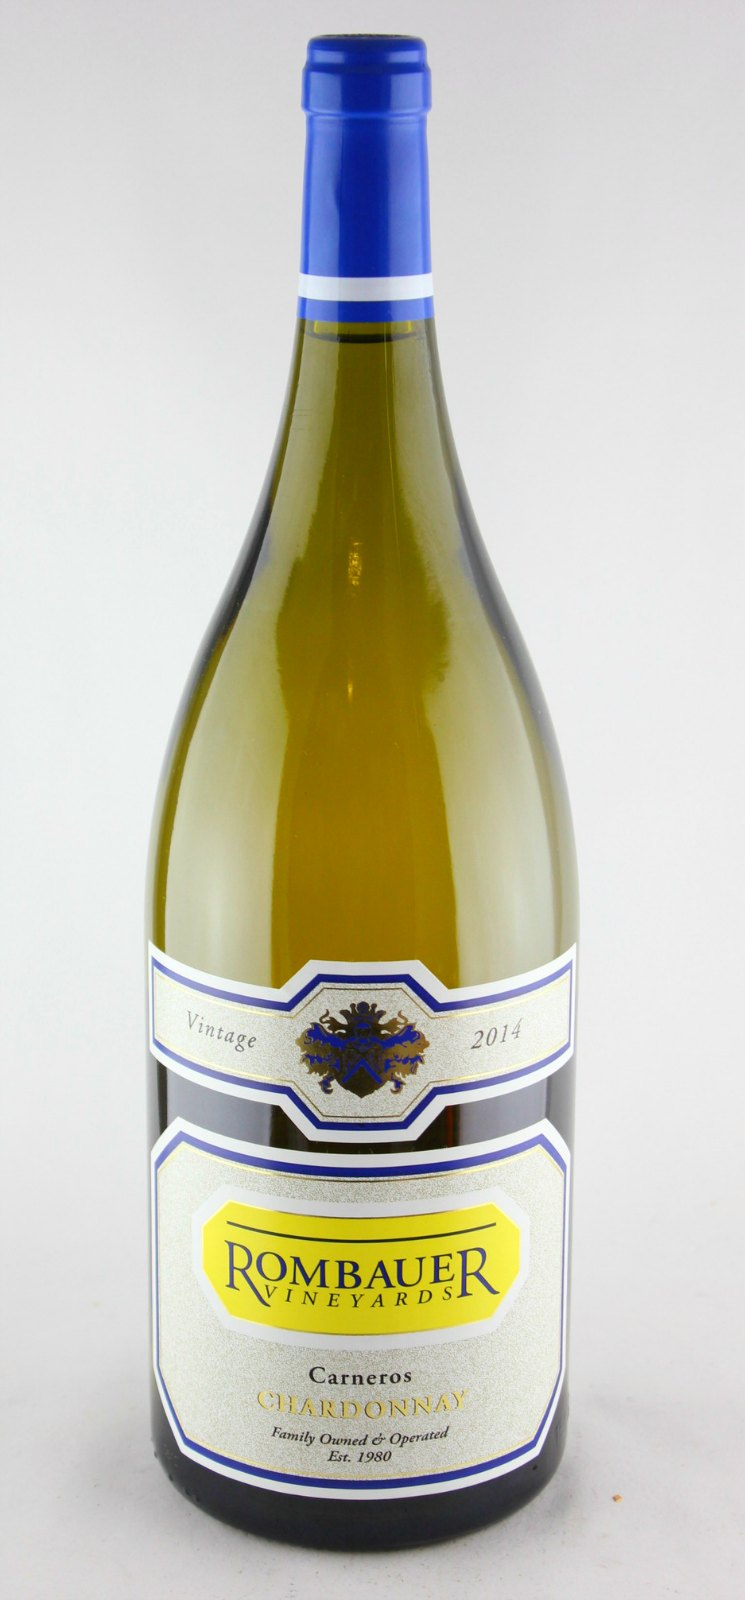 Rombauer Chardonnay Carneros 2014,  () from The BPW - Merchants of rare and fine wines.